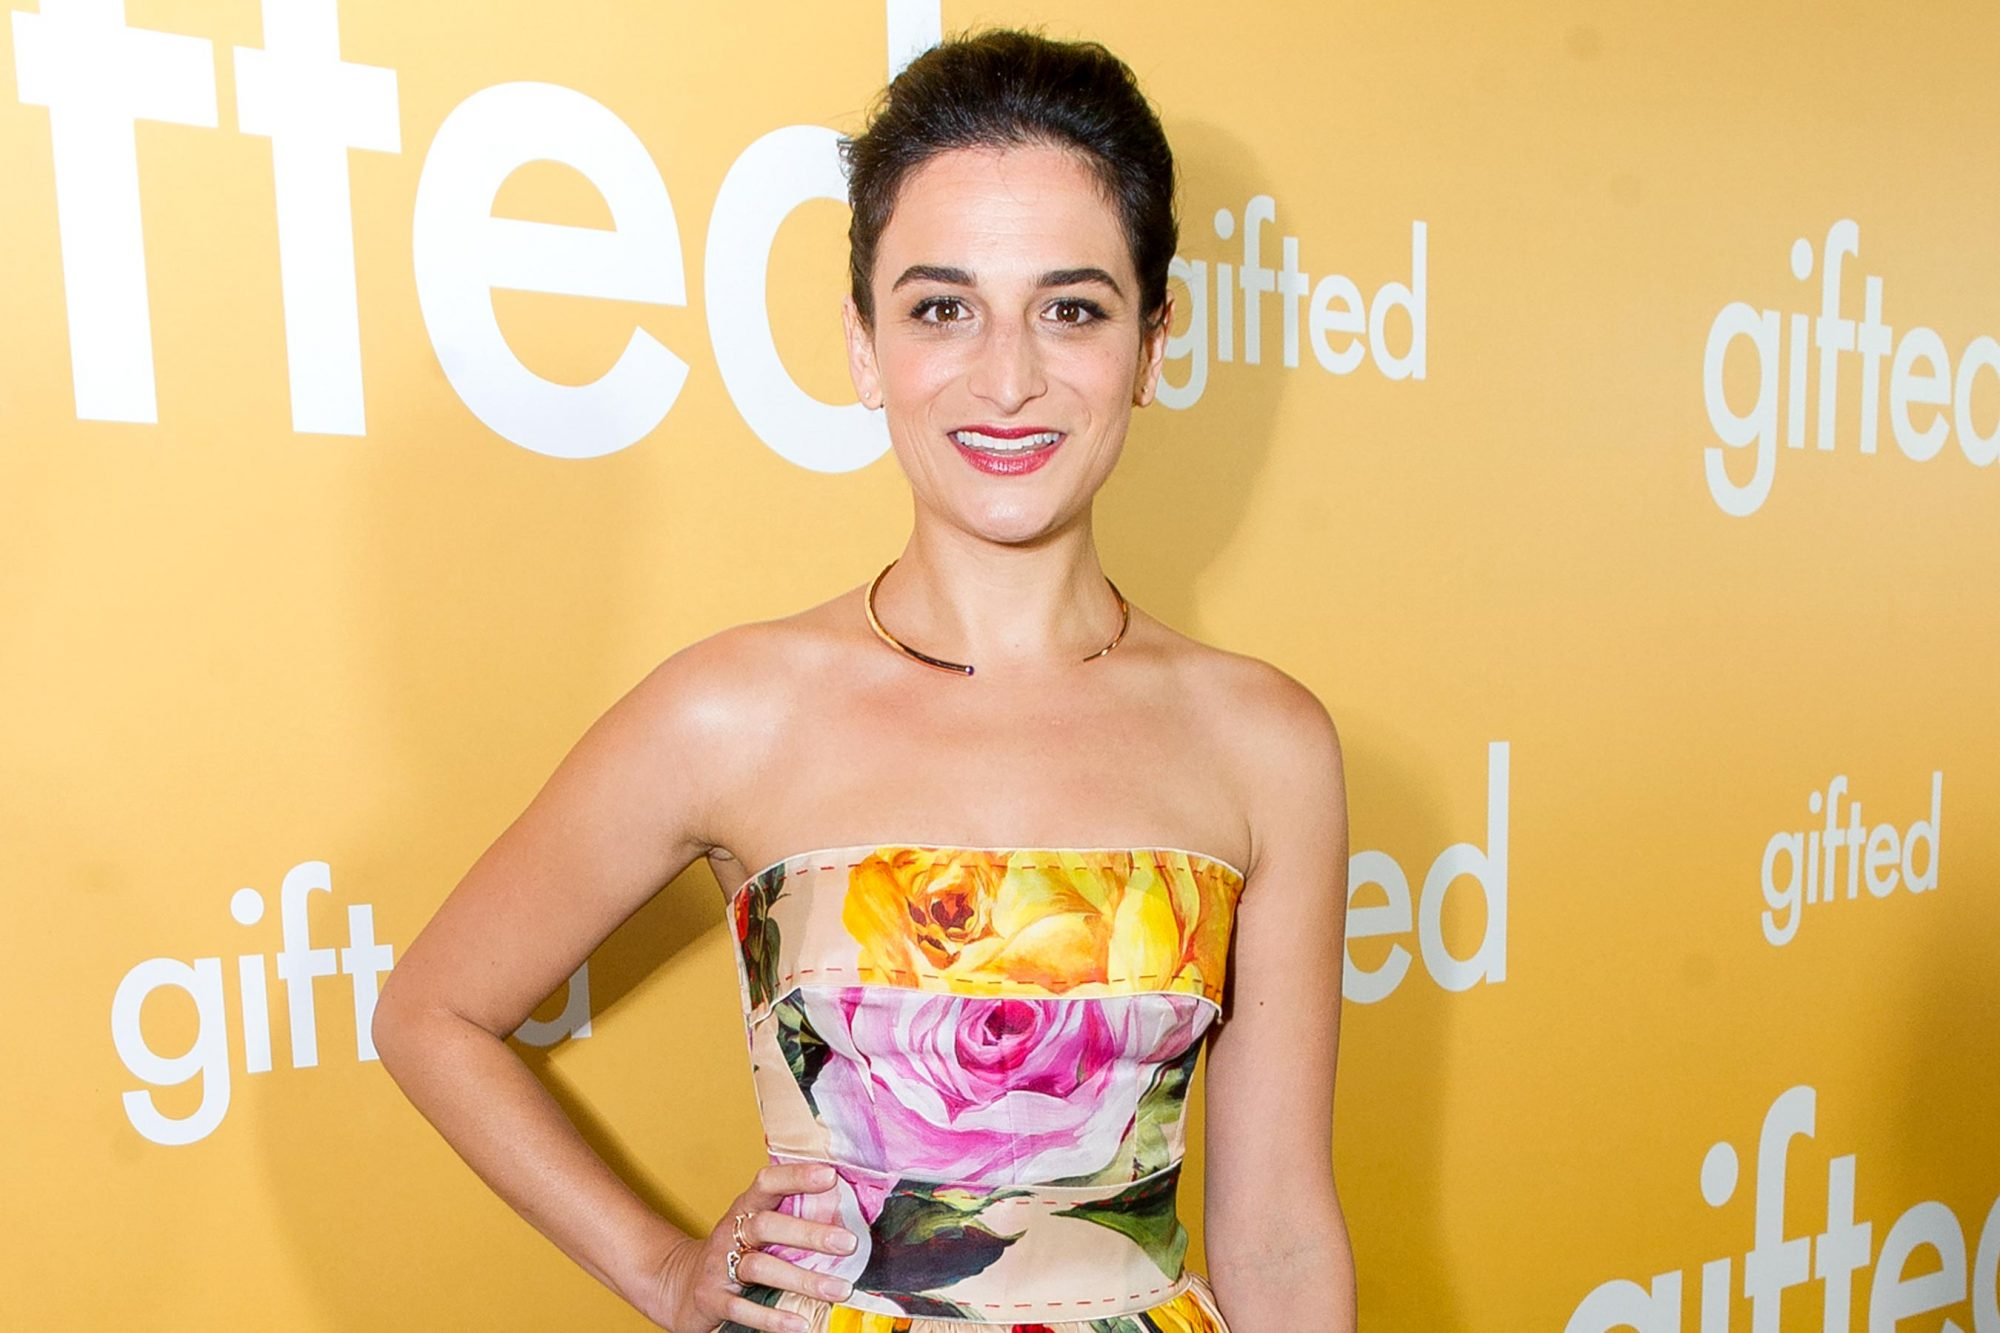 LOS ANGELES, CA - APRIL 04: Actress Jenny Slate arrives at the premiere of Fox Searchlight Pictures' 'Gifted' at Pacific Theaters at the Grove on April 4, 2017 in Los Angeles, California. (Photo by Emma McIntyre/Getty Images)